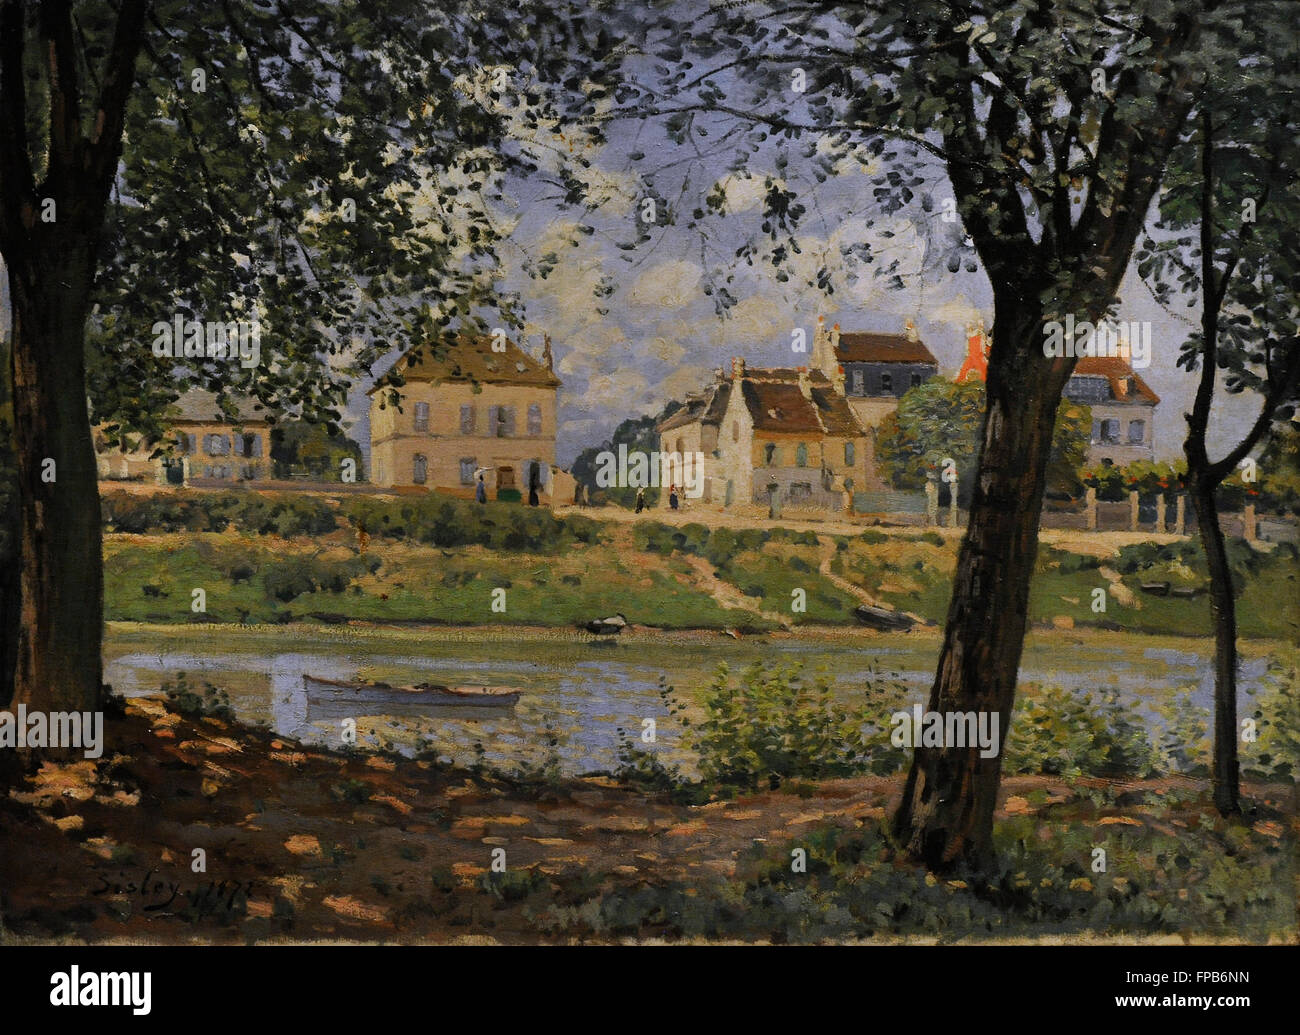 Alfred Sisley (1839-1899). French impressionist painter. Villeneuve-la-Garenne, 1872. Oil on canvas. The State Hermitage - Stock Image